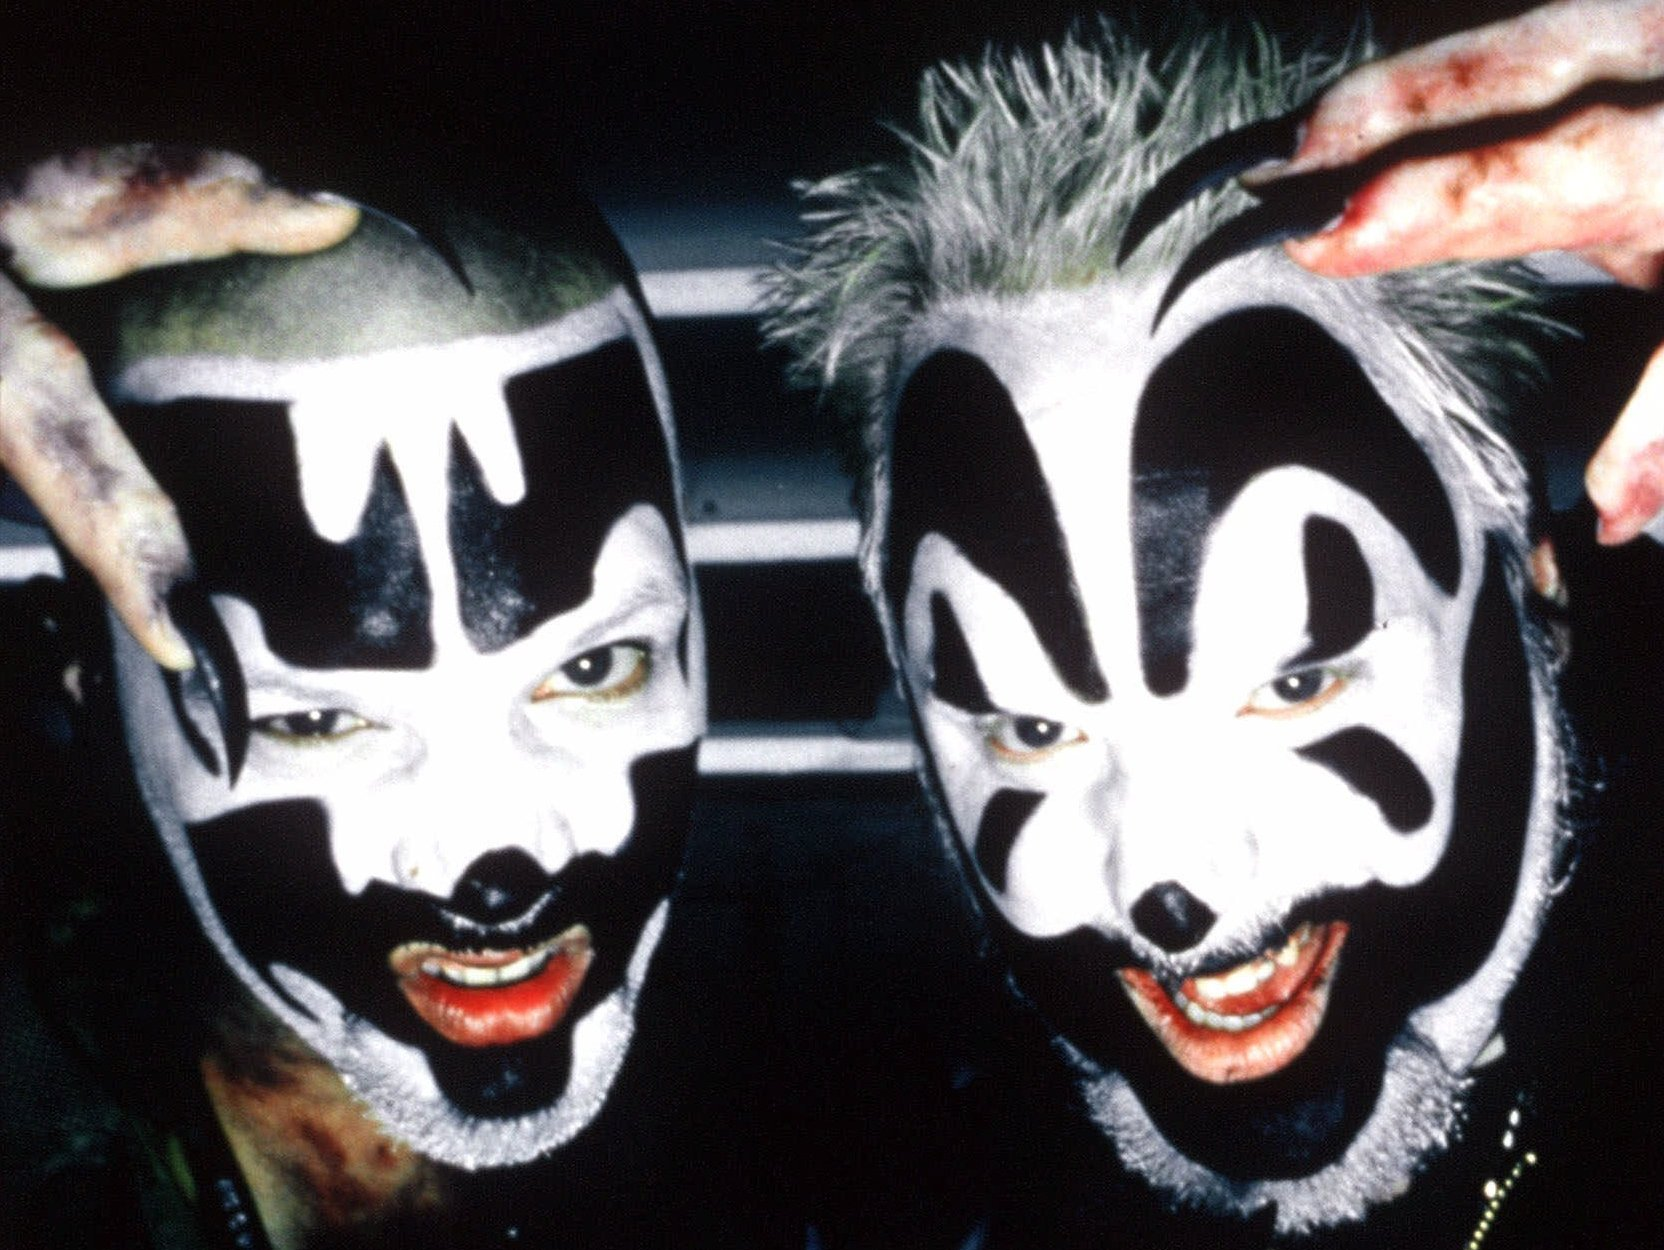 Insane Clown Posse: also pretty scary.